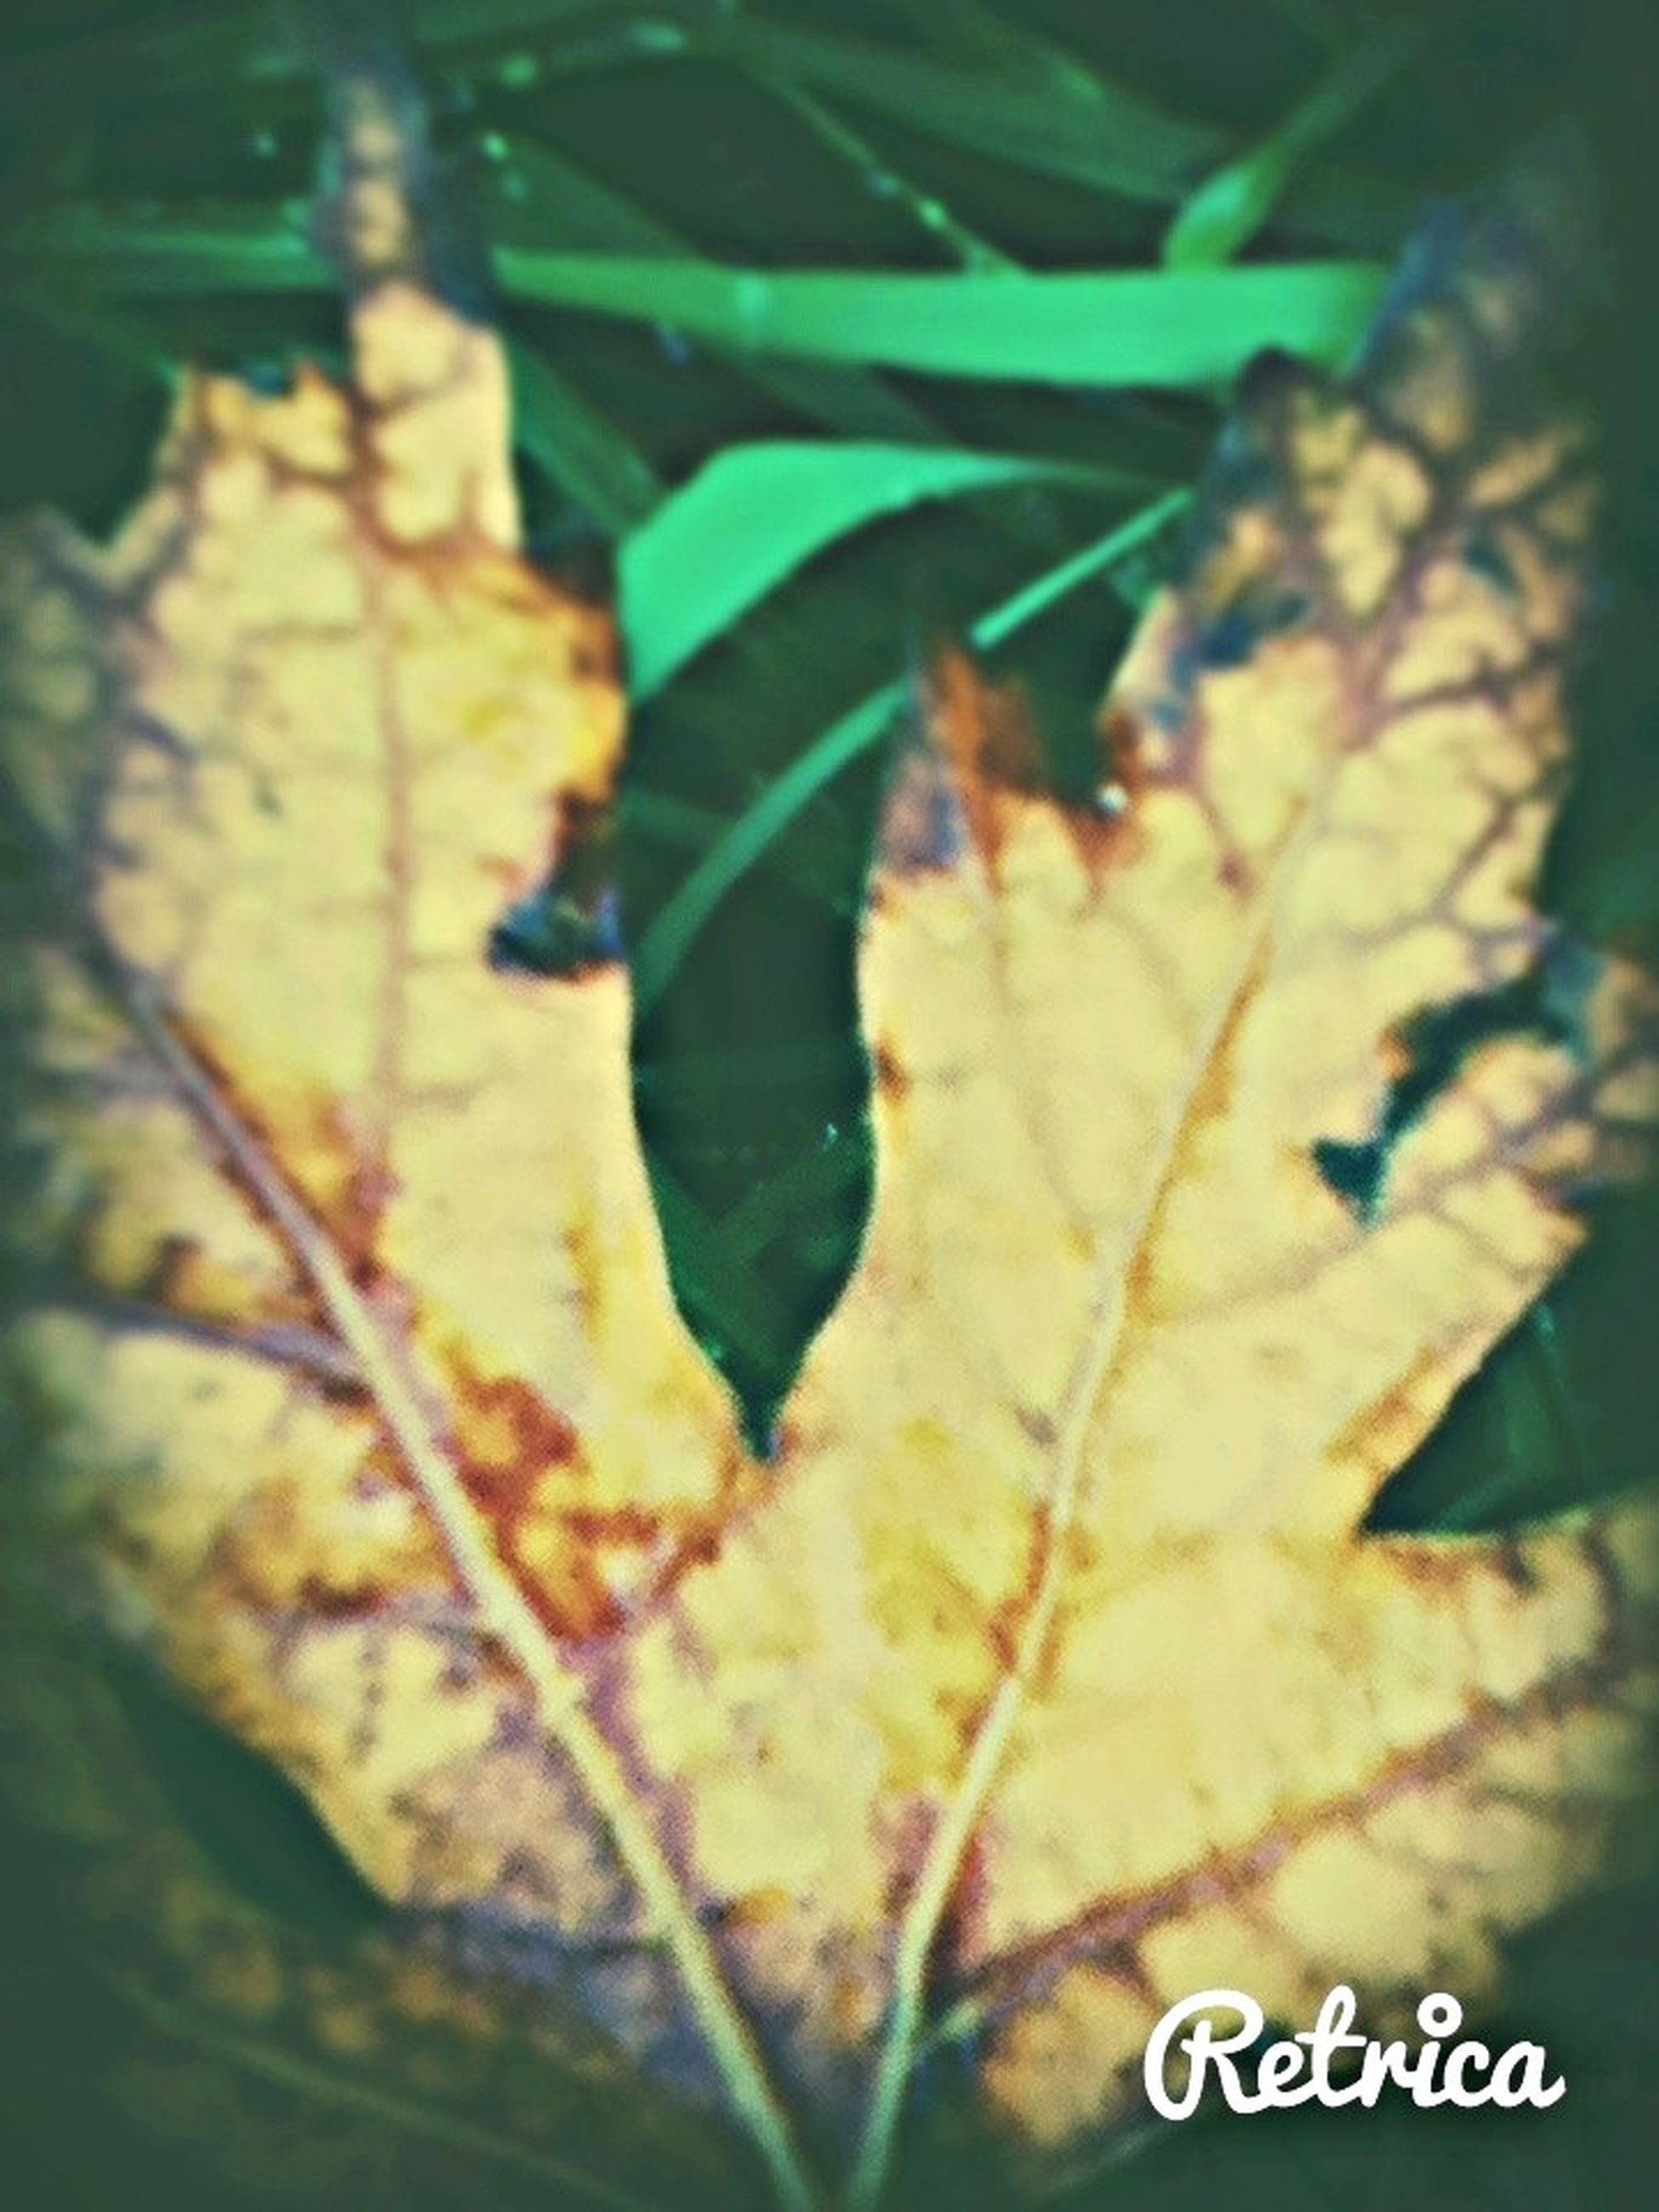 leaf, text, close-up, focus on foreground, growth, nature, western script, communication, outdoors, day, autumn, plant, selective focus, tree, high angle view, leaves, yellow, no people, sunlight, tranquility